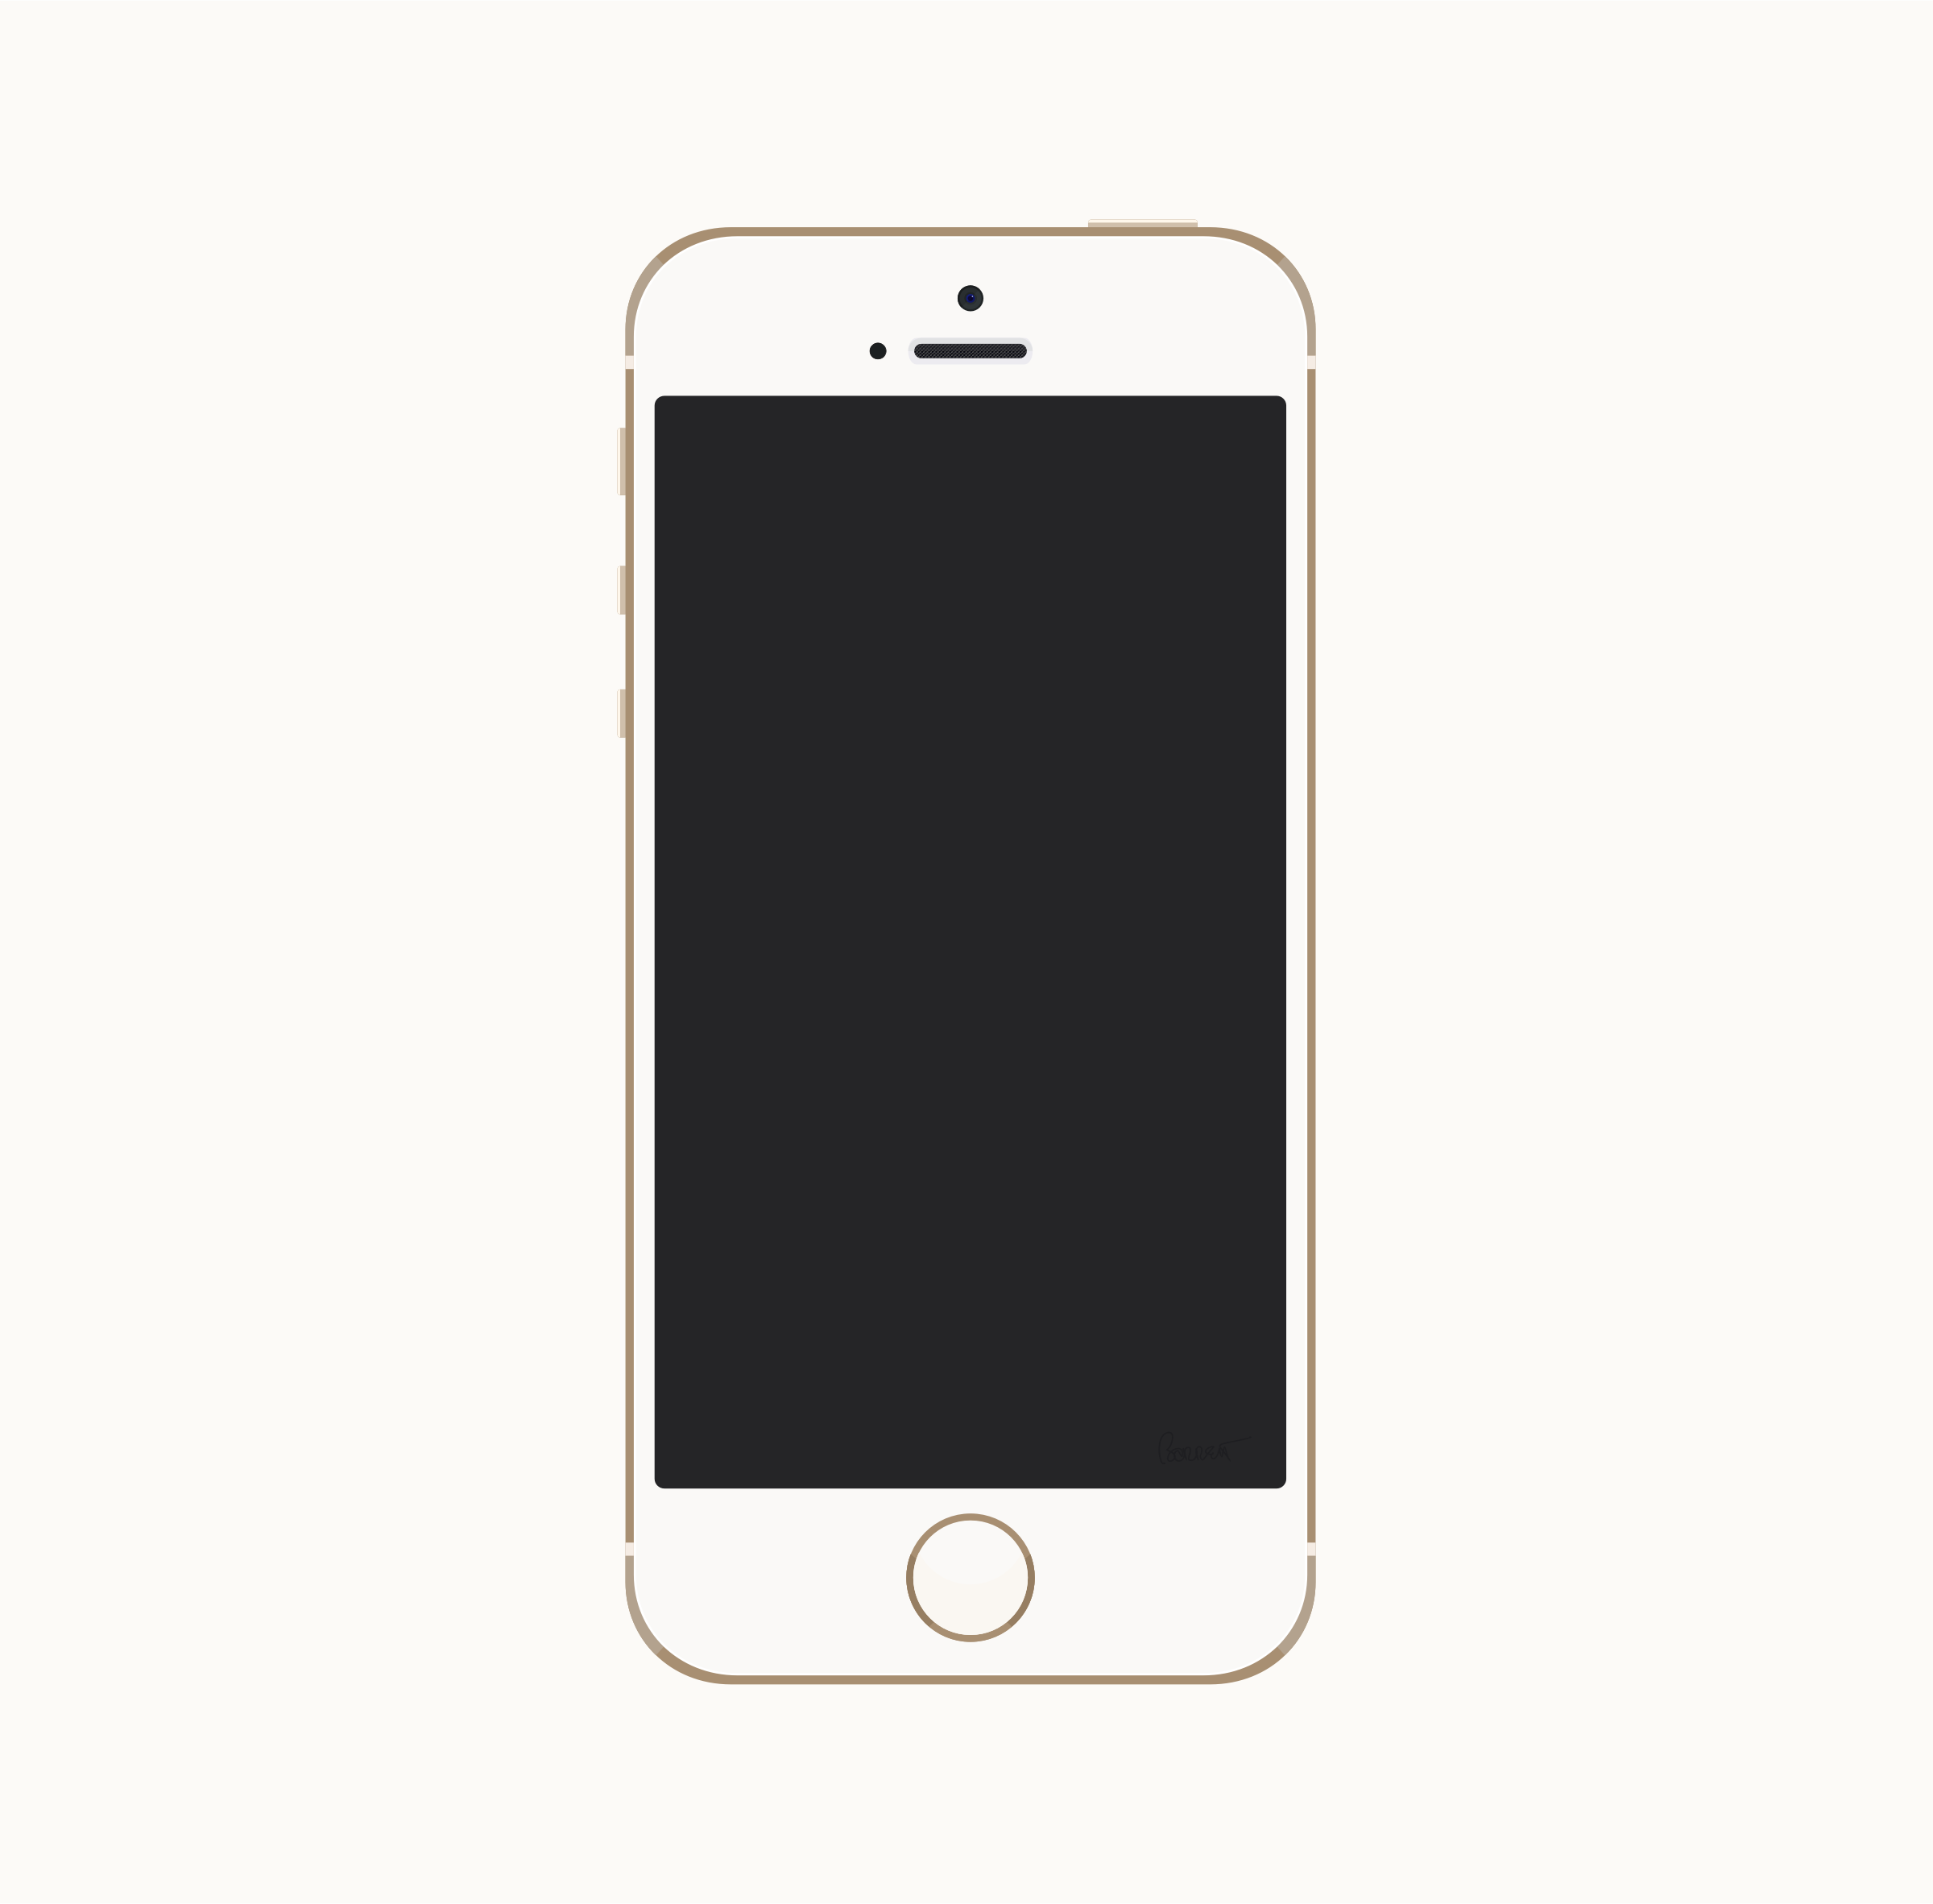 Iphone Cell Phone Clip Art ..